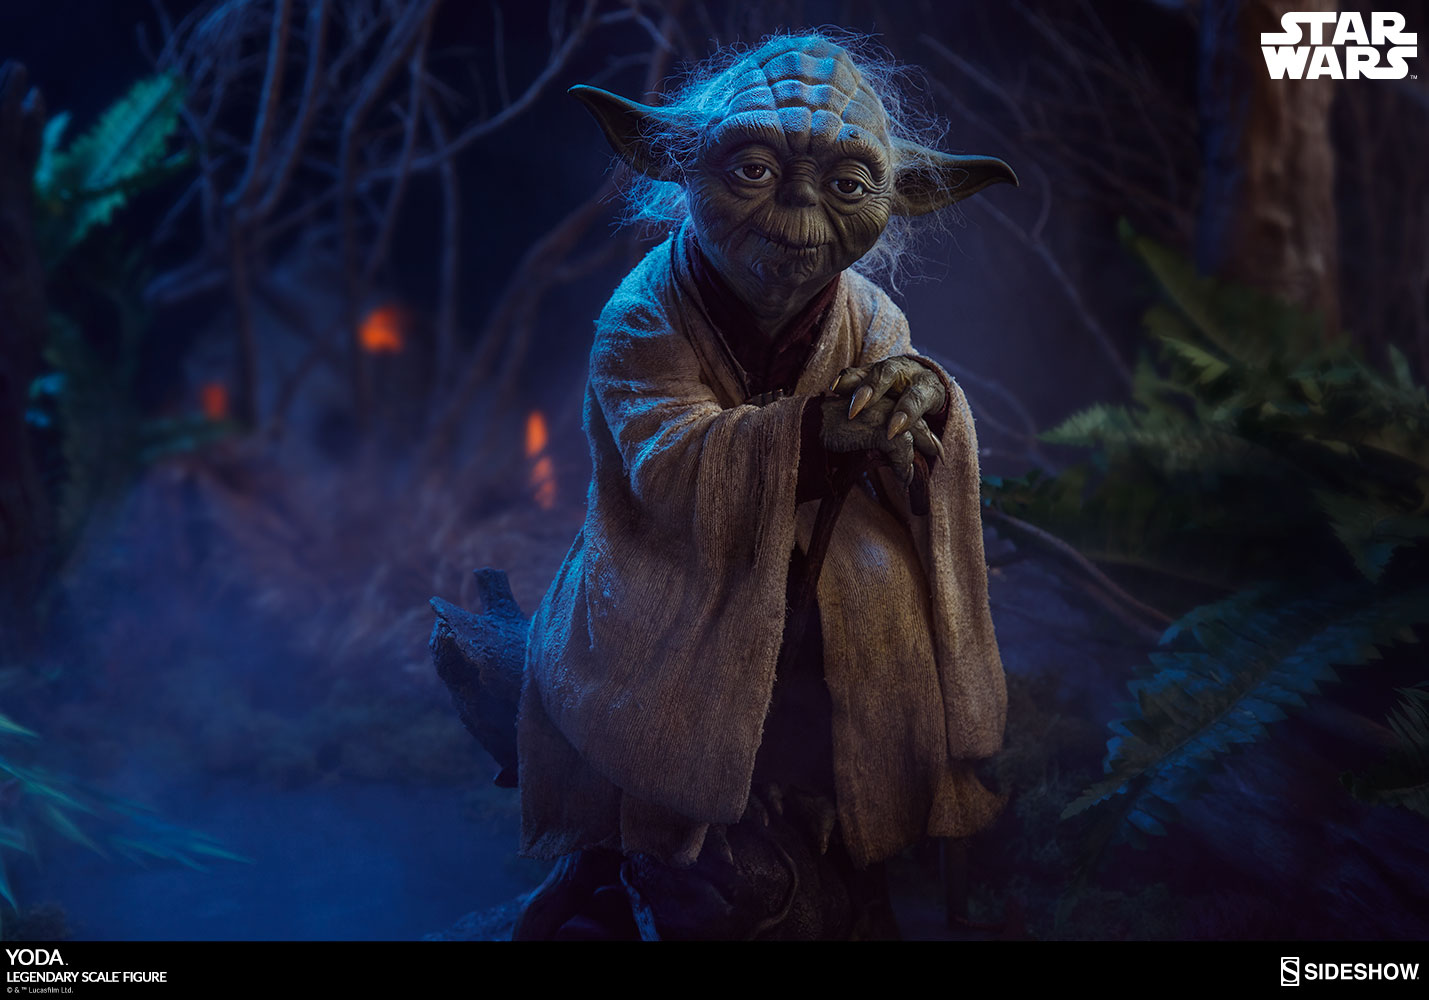 yoda legendary scale 1 2 figure by sideshow collectibles